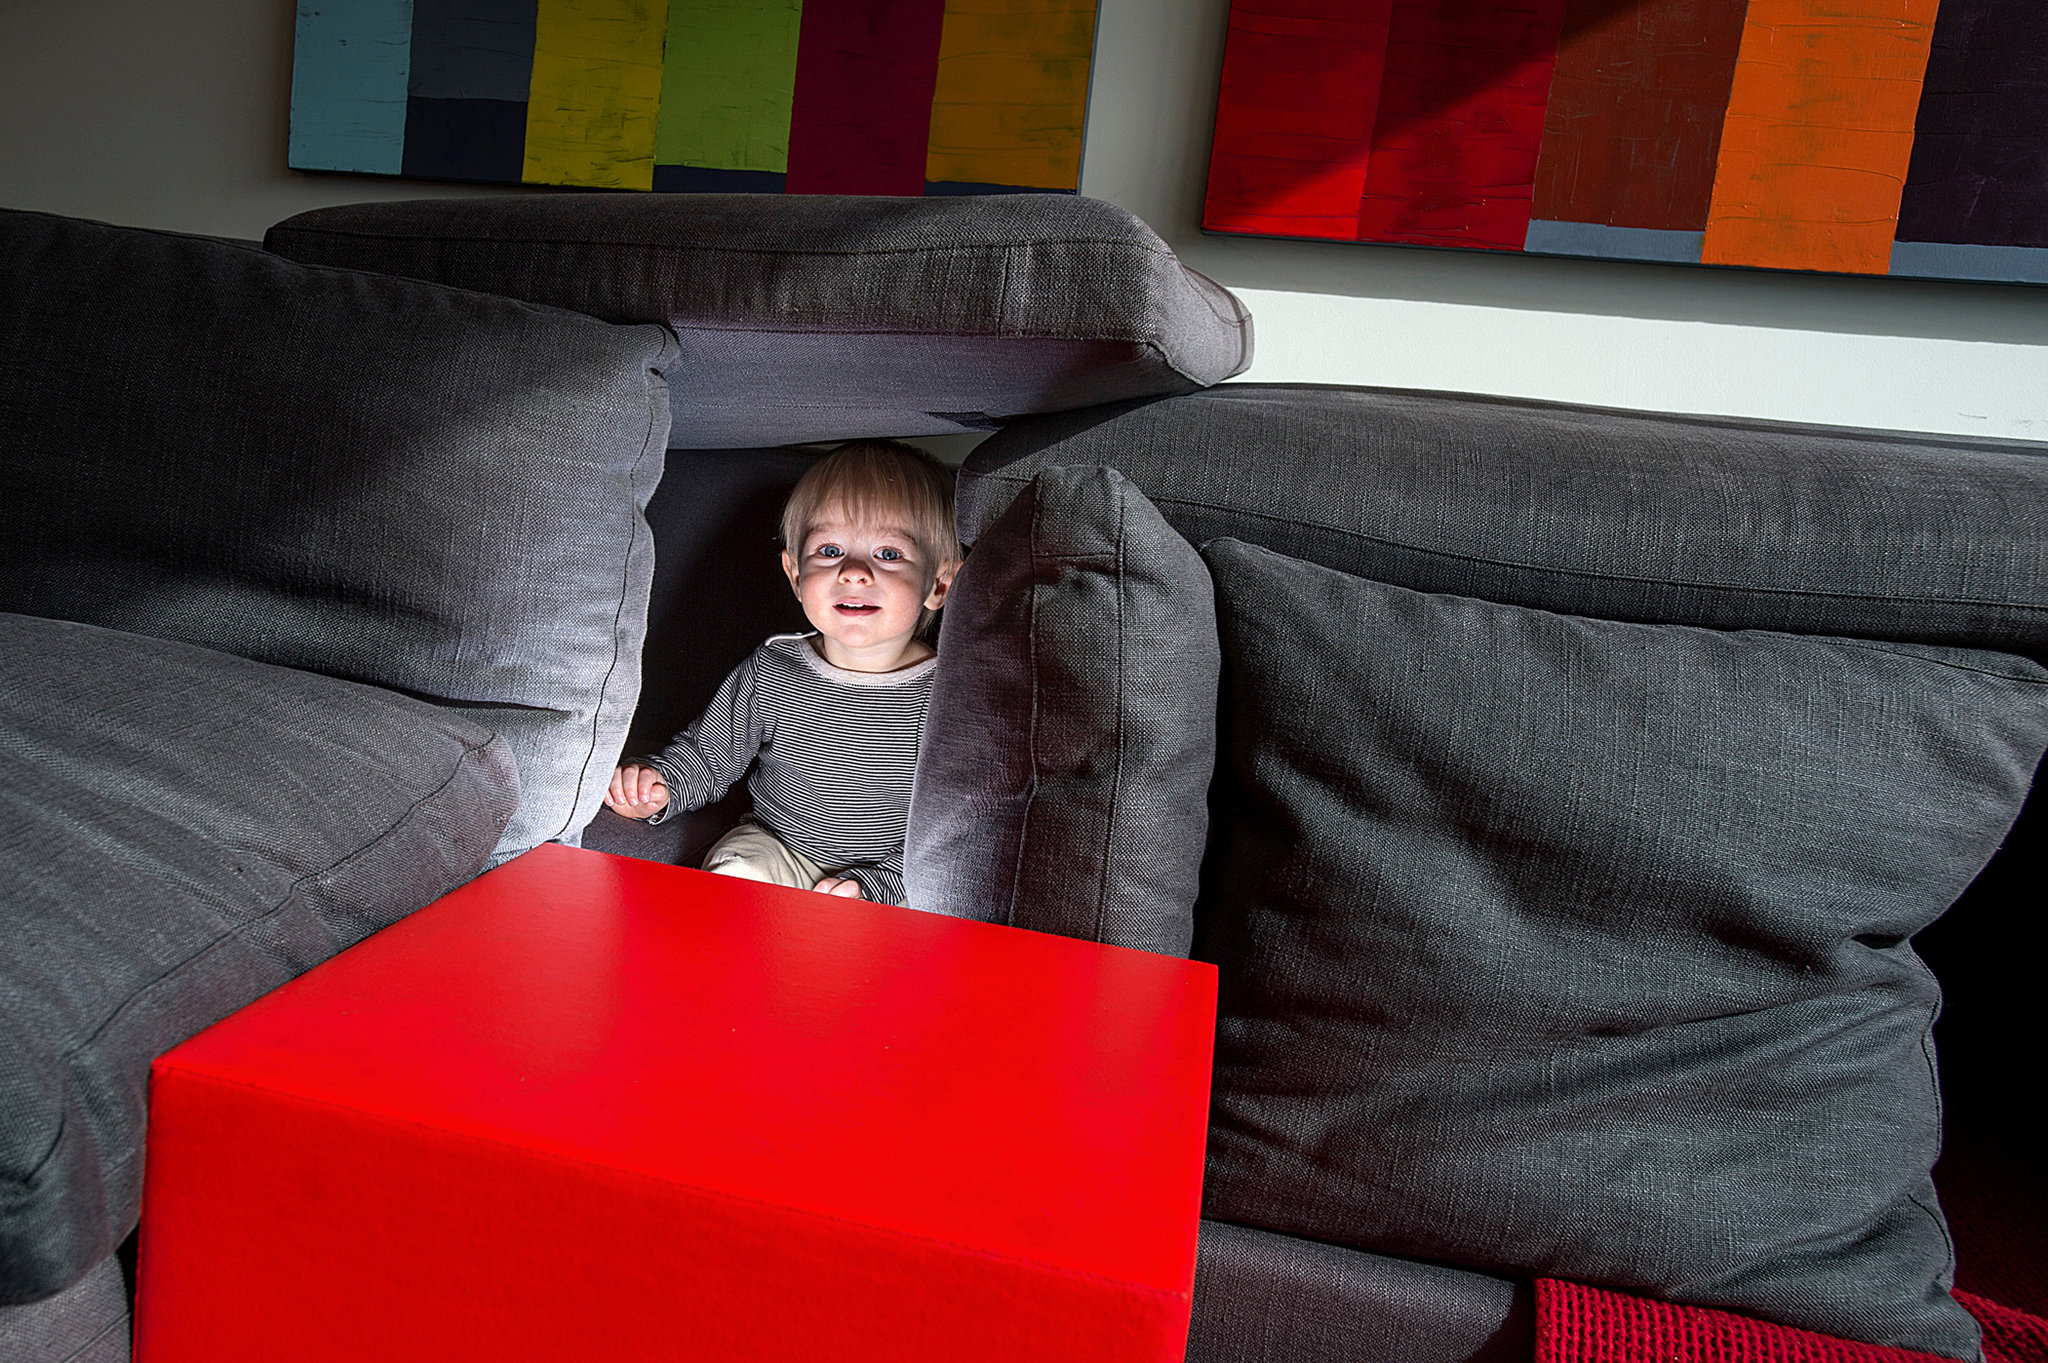 cool sofa forts fixing a broken leg lessons in the art of pillow fort construction new